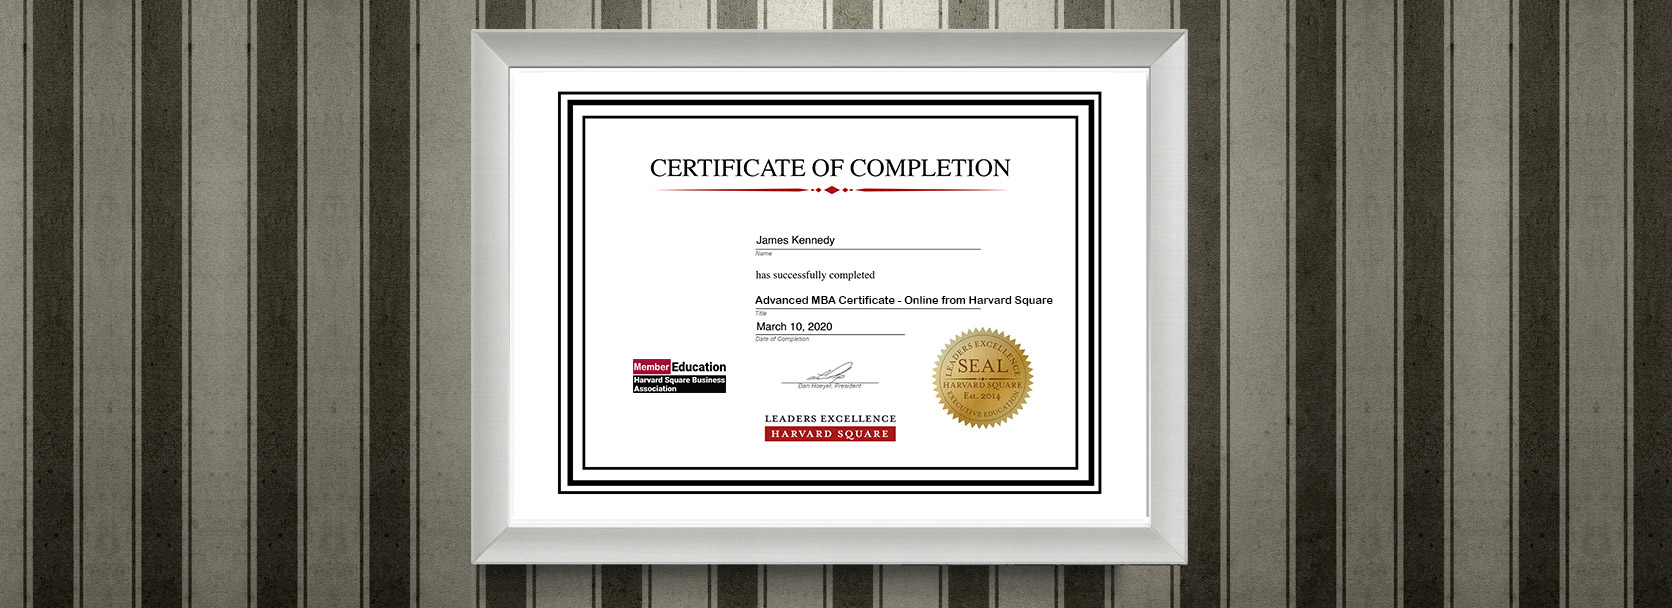 Framed certificate hanging on a wall for completion of the Advanced MBA Certificate program